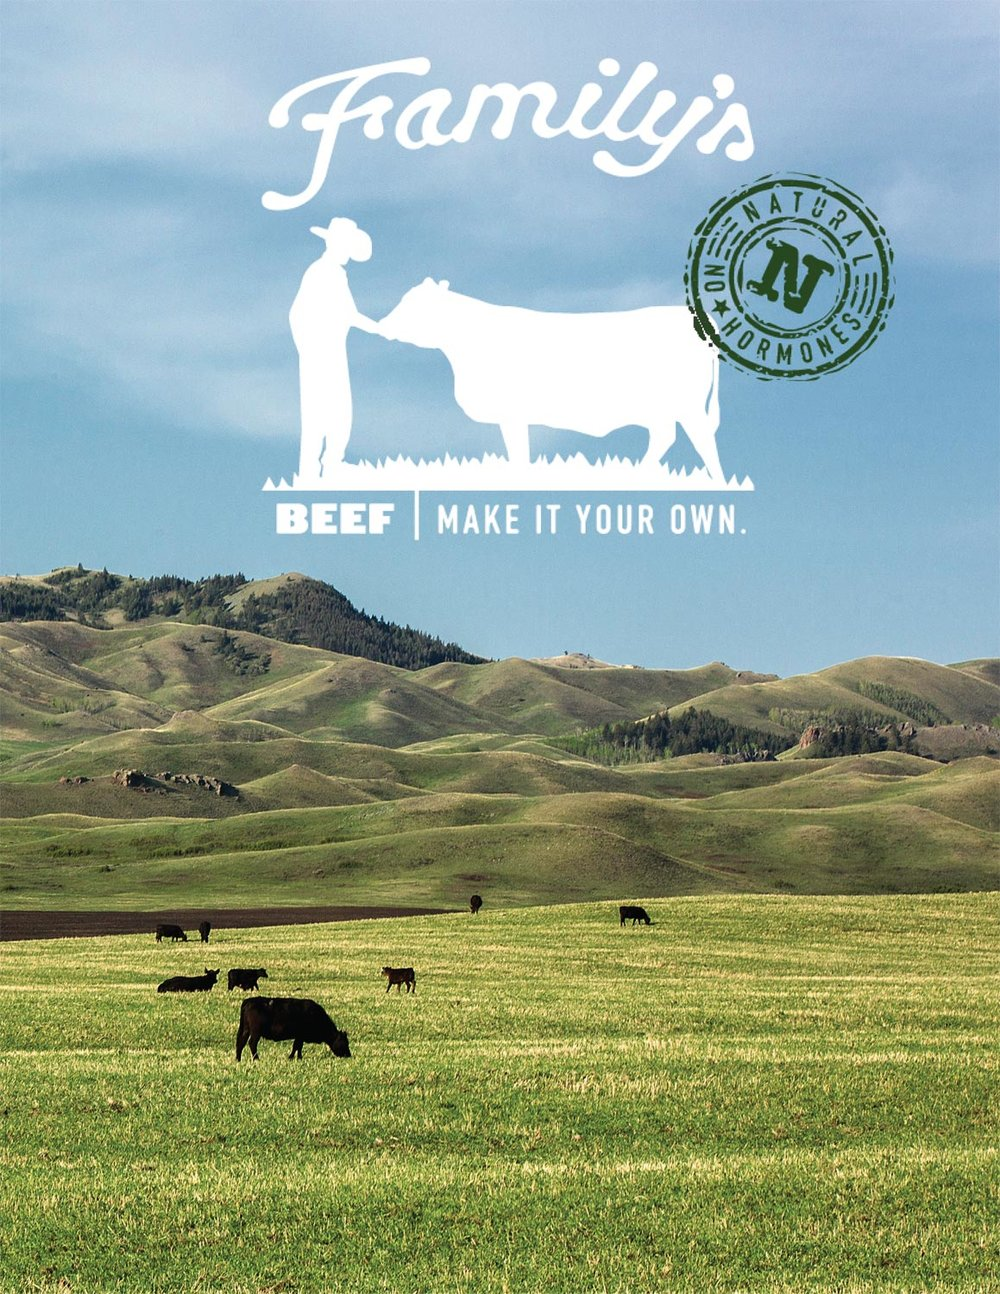 Montana-Ranching-Stock-Photography-Used-on-Cover-of-Agribusiness-Promotional-Piece